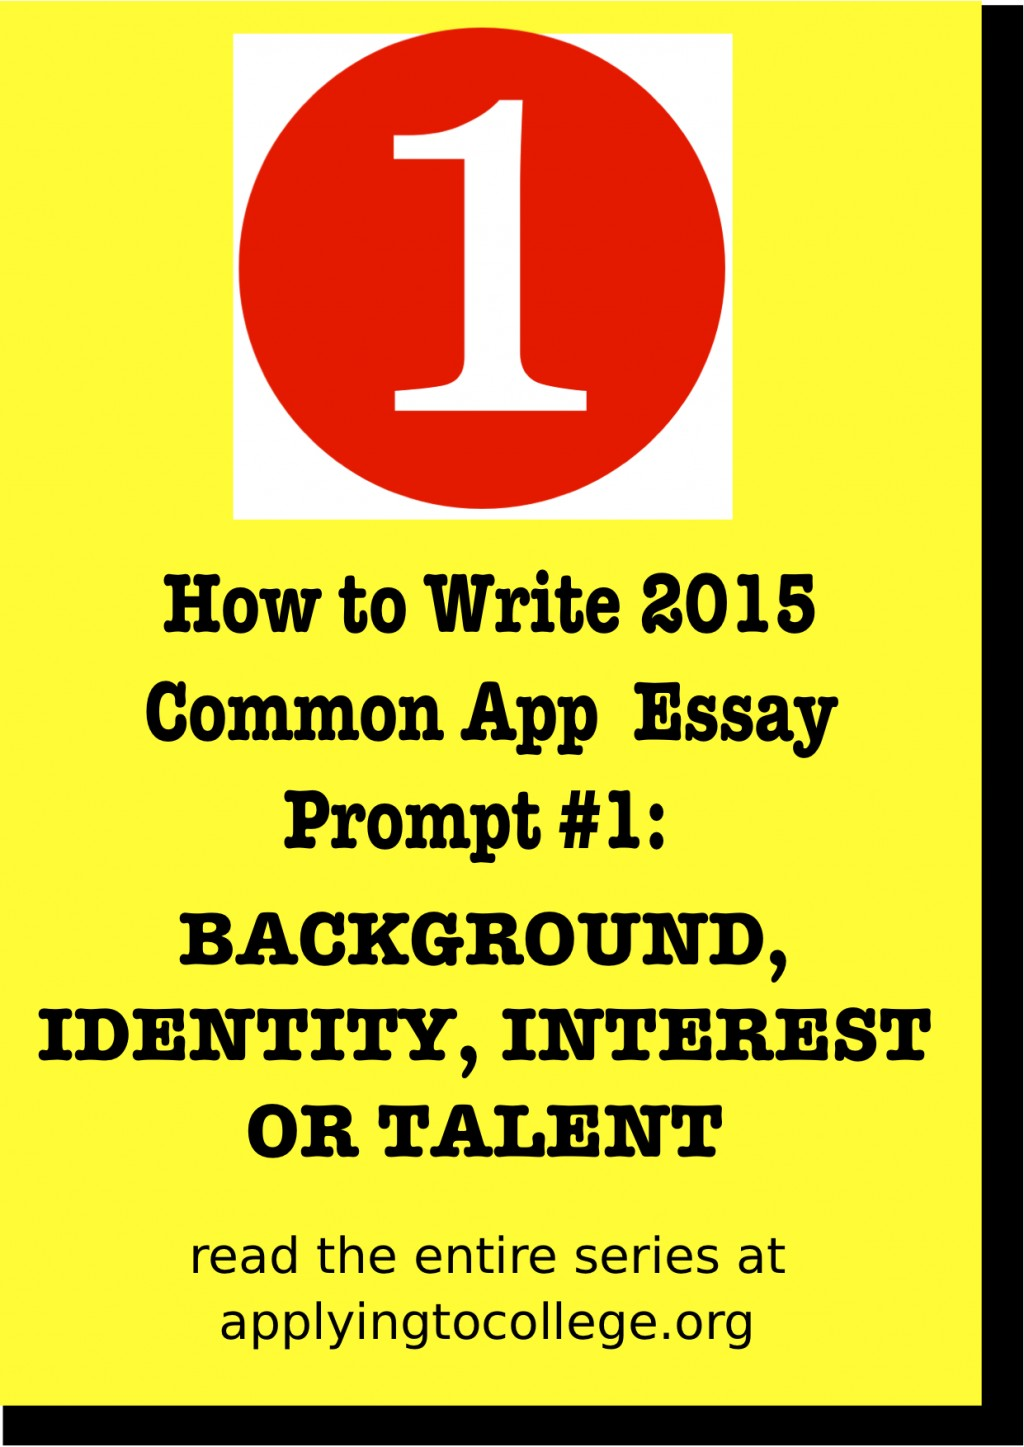 004 Essay Example Prompts For College Essays How To Write Common App Unusual 2015 Large